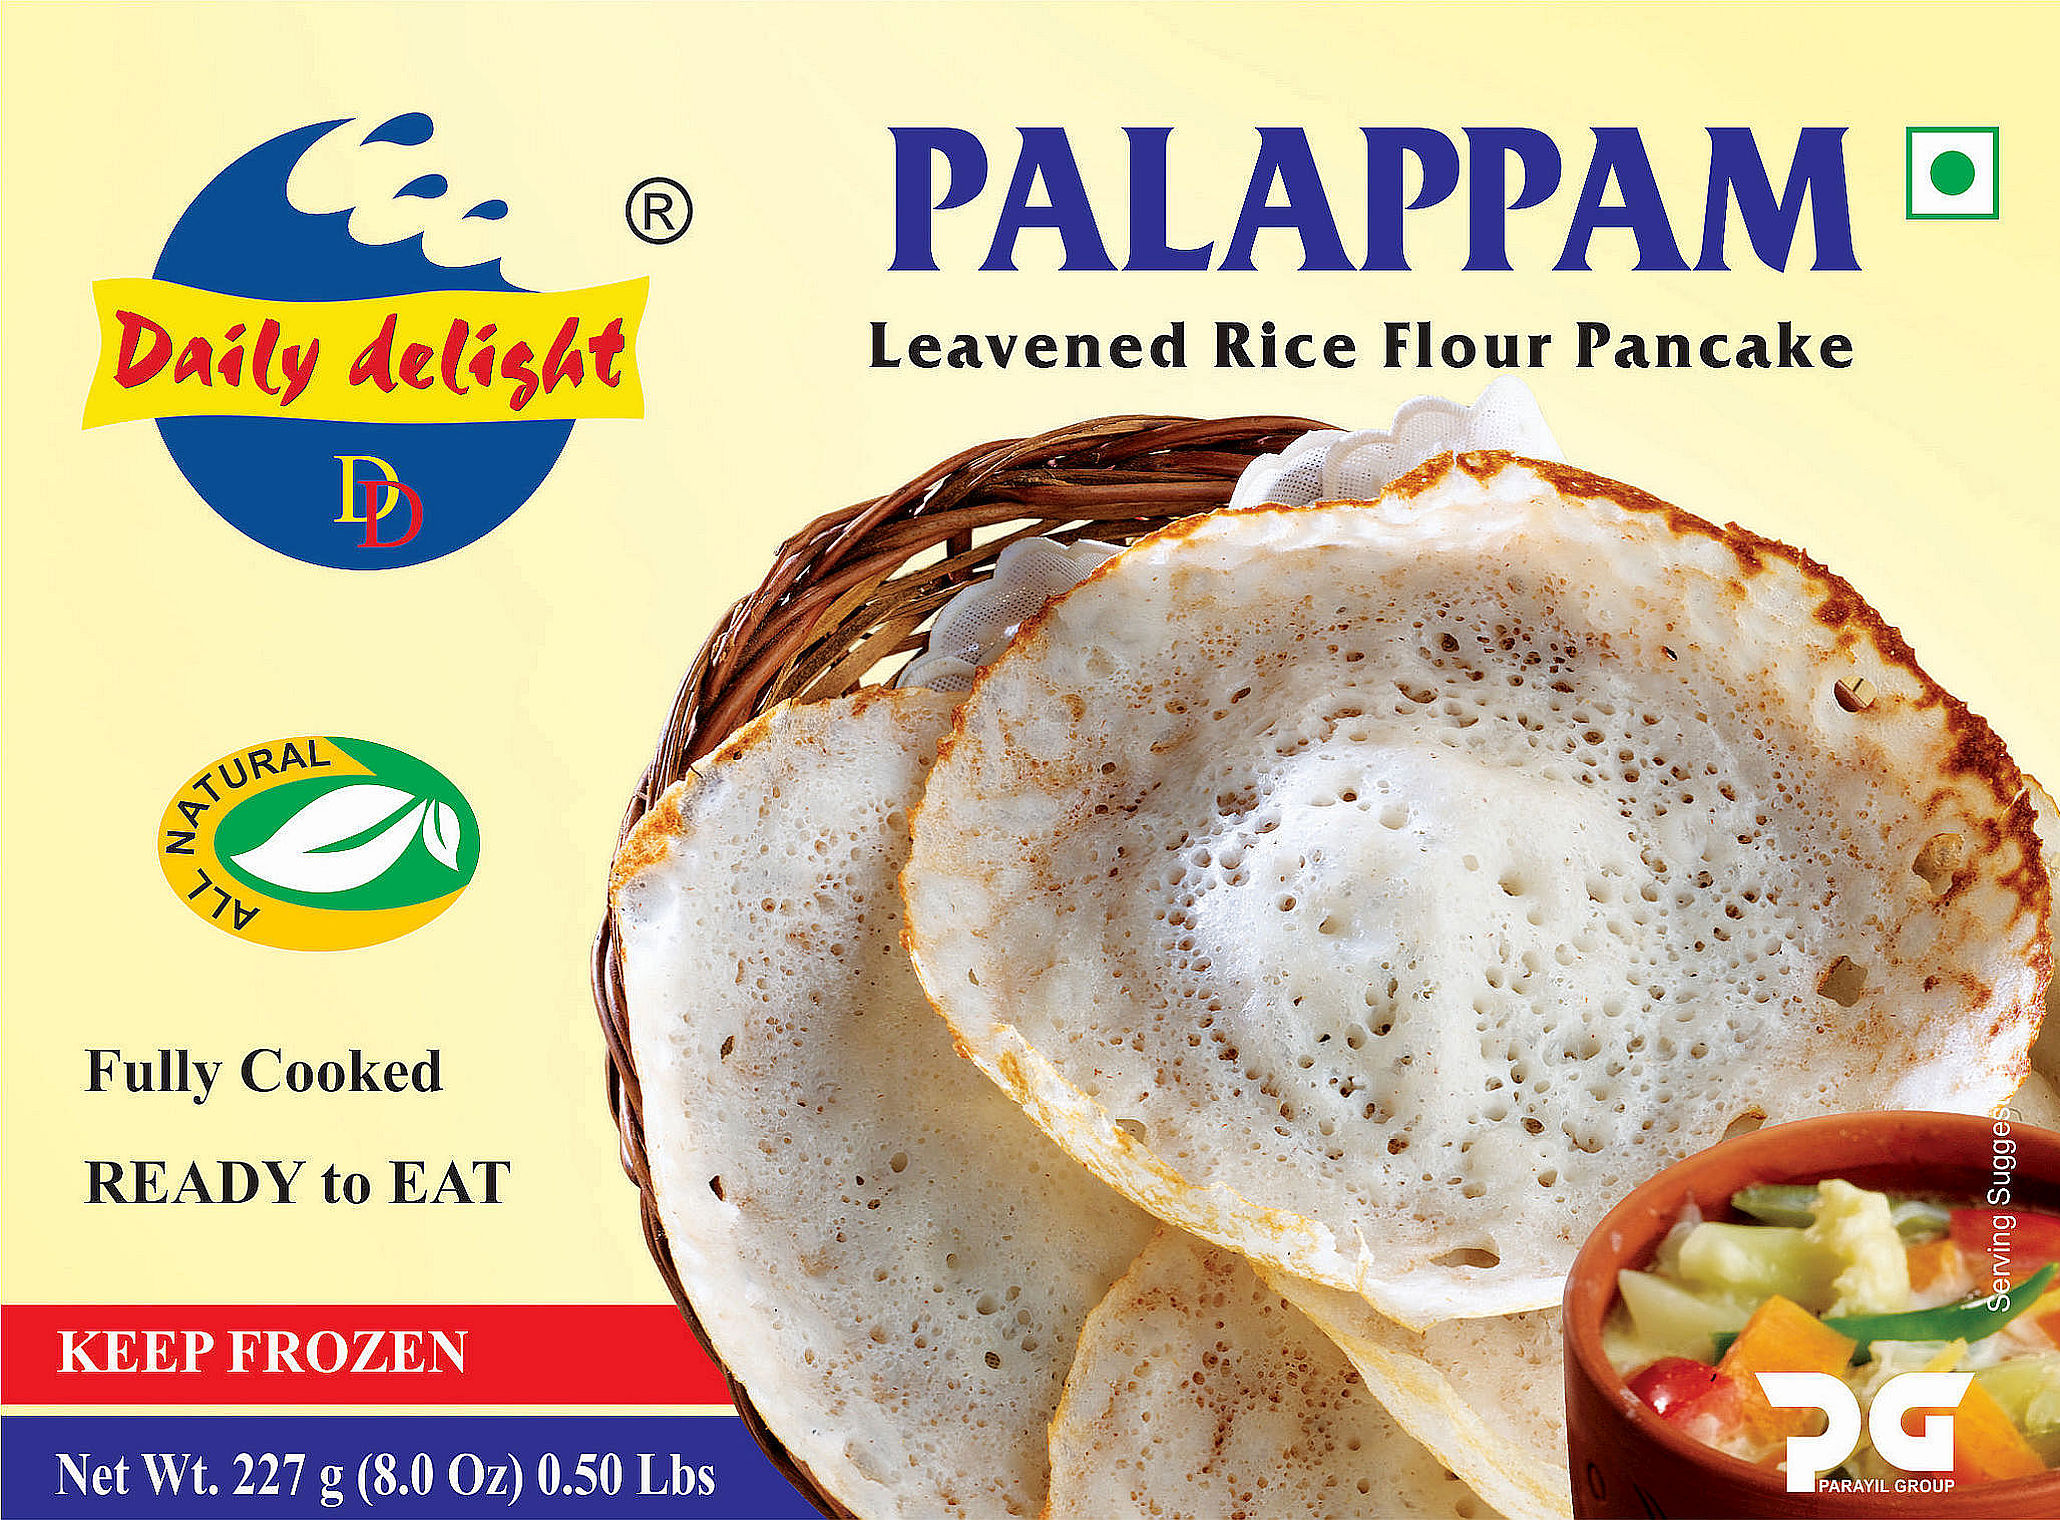 Daily Delight Palappam